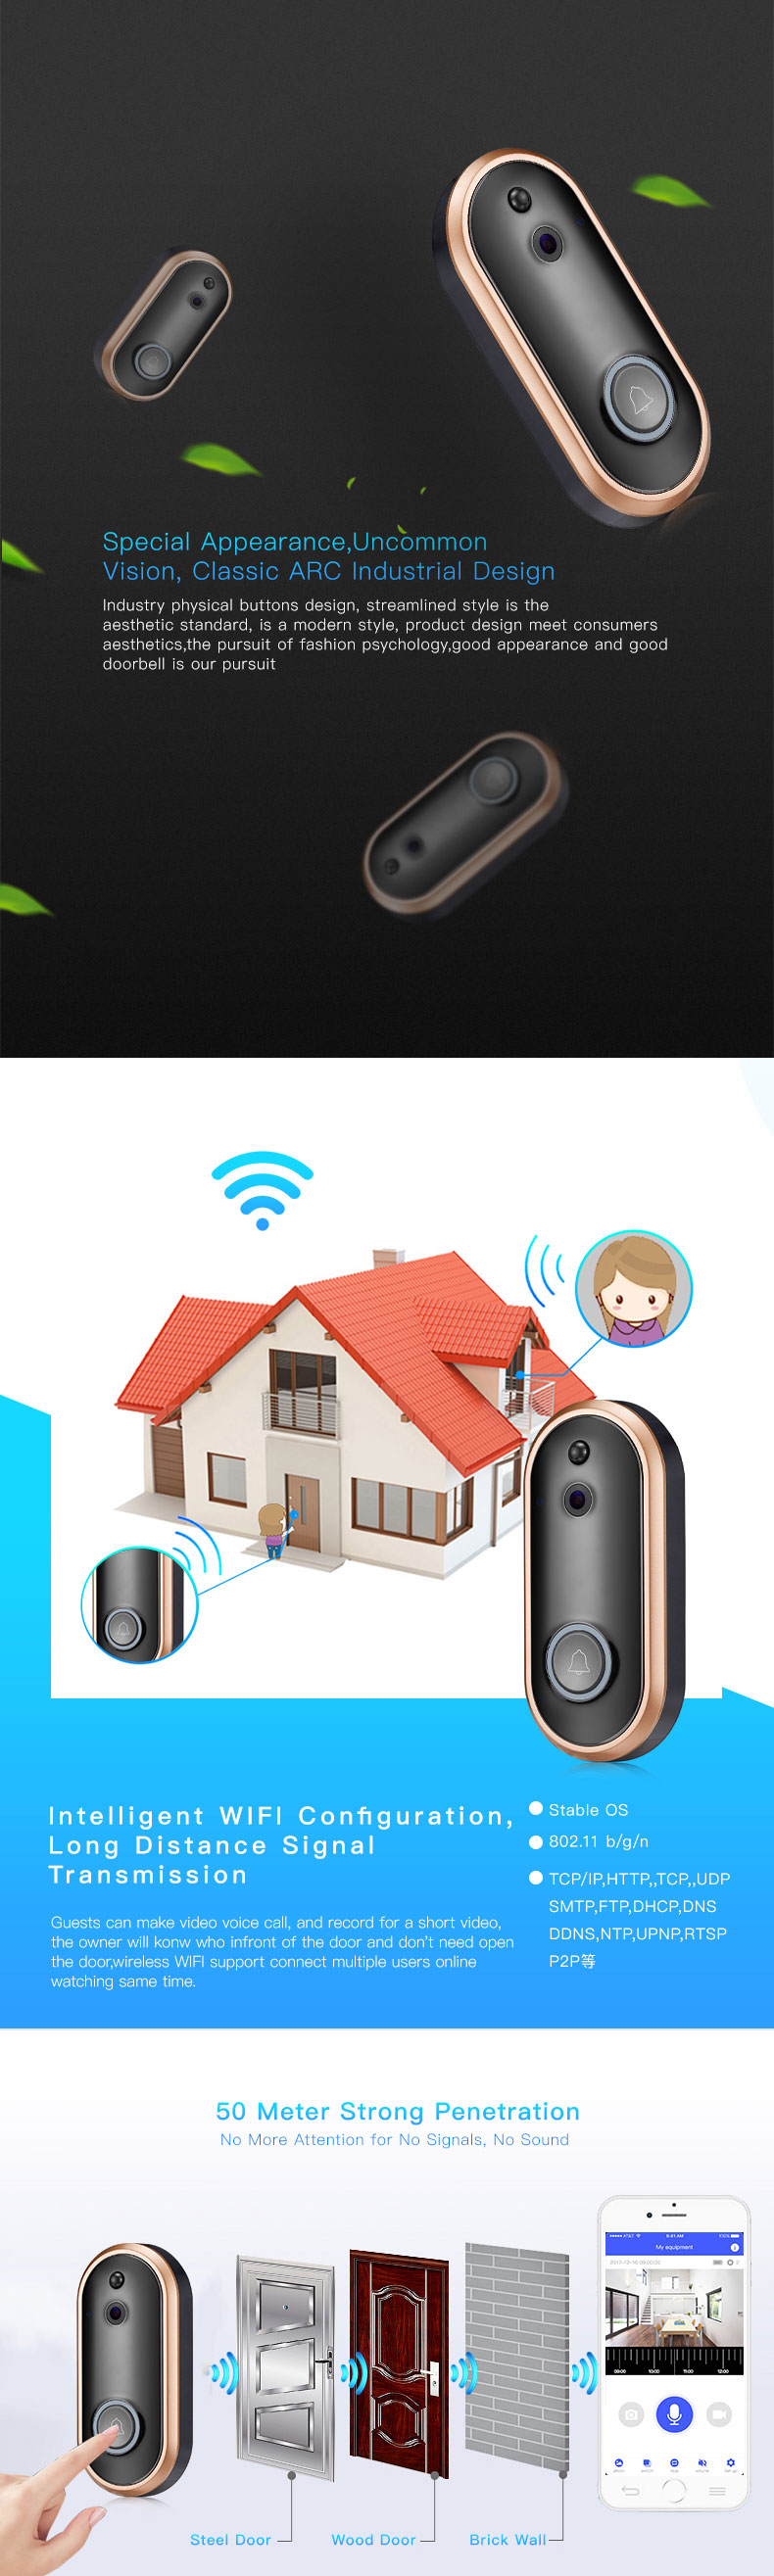 Manufactures flashlight 1080p doorbell M6 push button wireless video doorbell